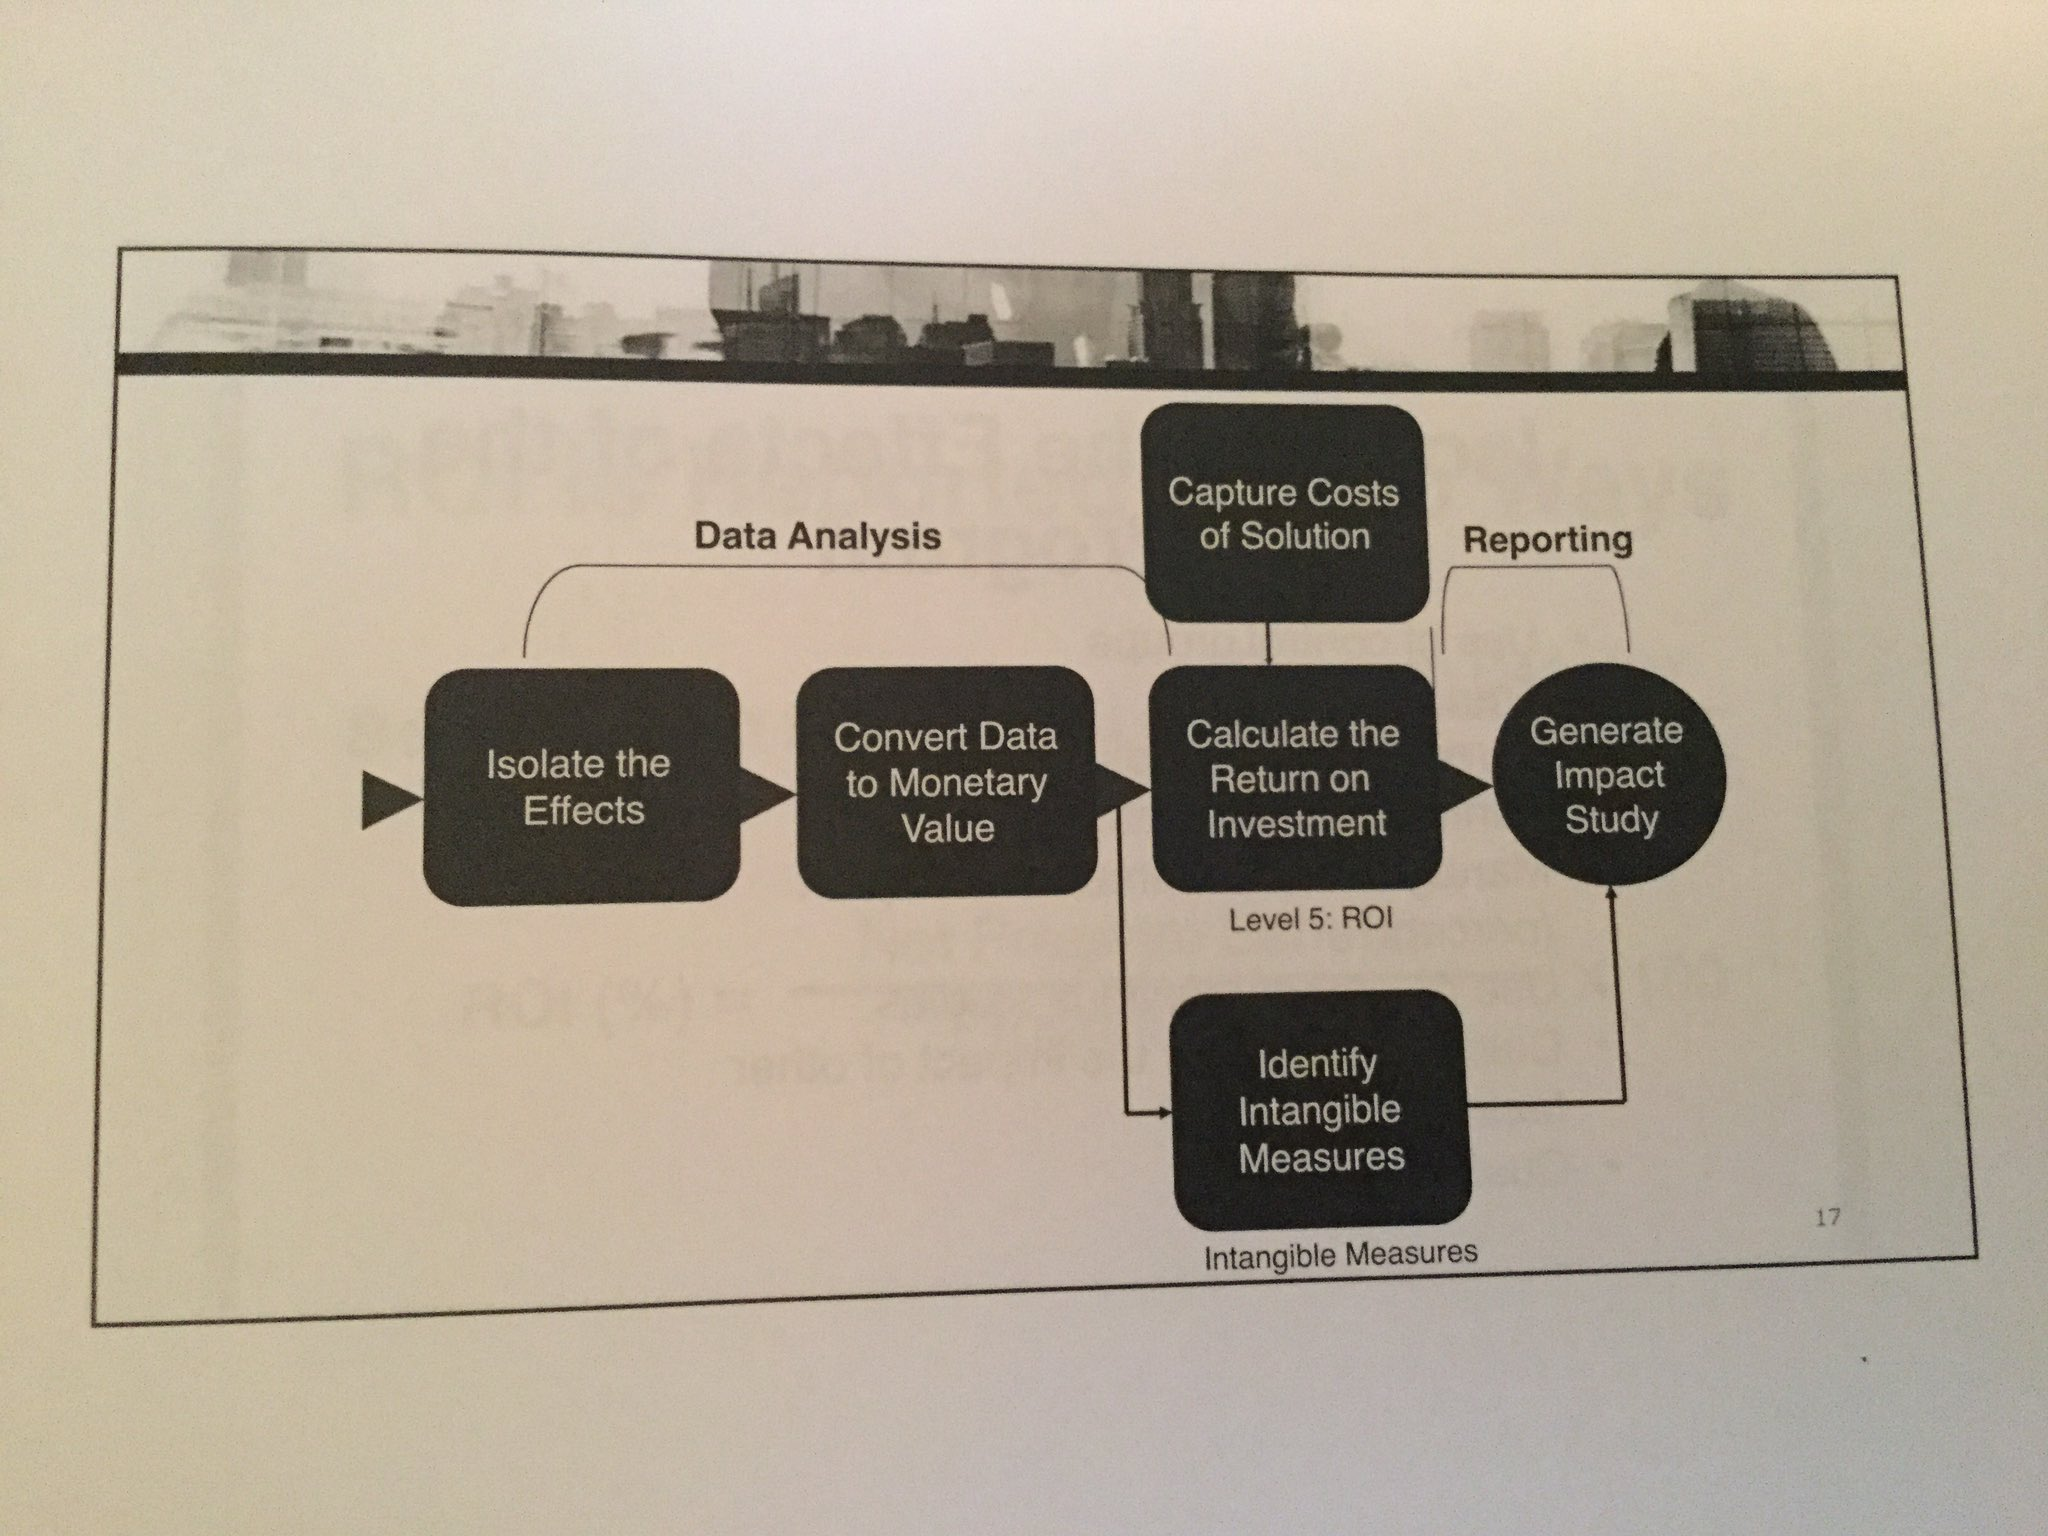 #CIPDldshow #F1 I love how a flow chart makes things look simple that are actually really hard.  E.g. HOW do you isolate the effects https://t.co/b071Mz2iTu